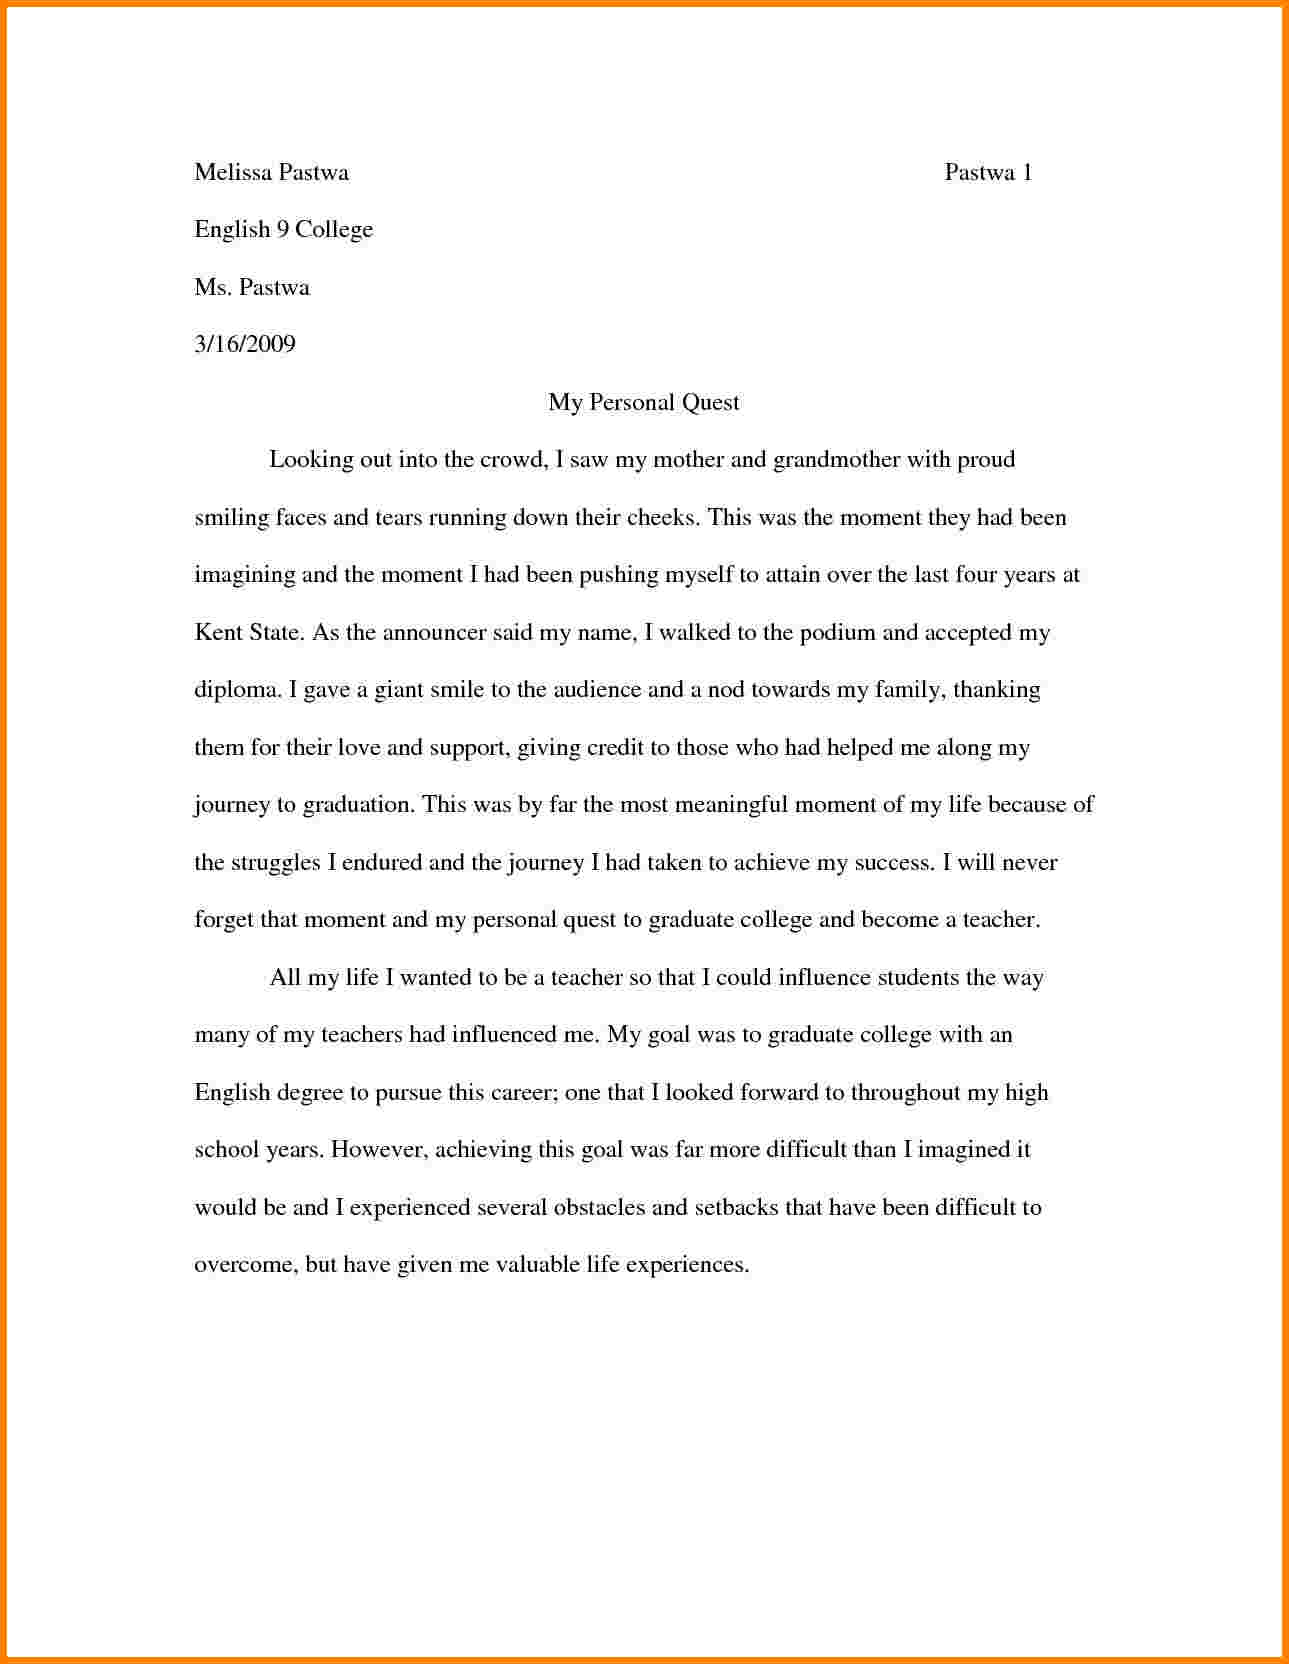 020 3341381556 How To Write Proposal20nt Essay Topics Buy Researchs Cheap Examples20 Good For Awesome Research Papers Argumentative In College Interesting Paper The Philippines